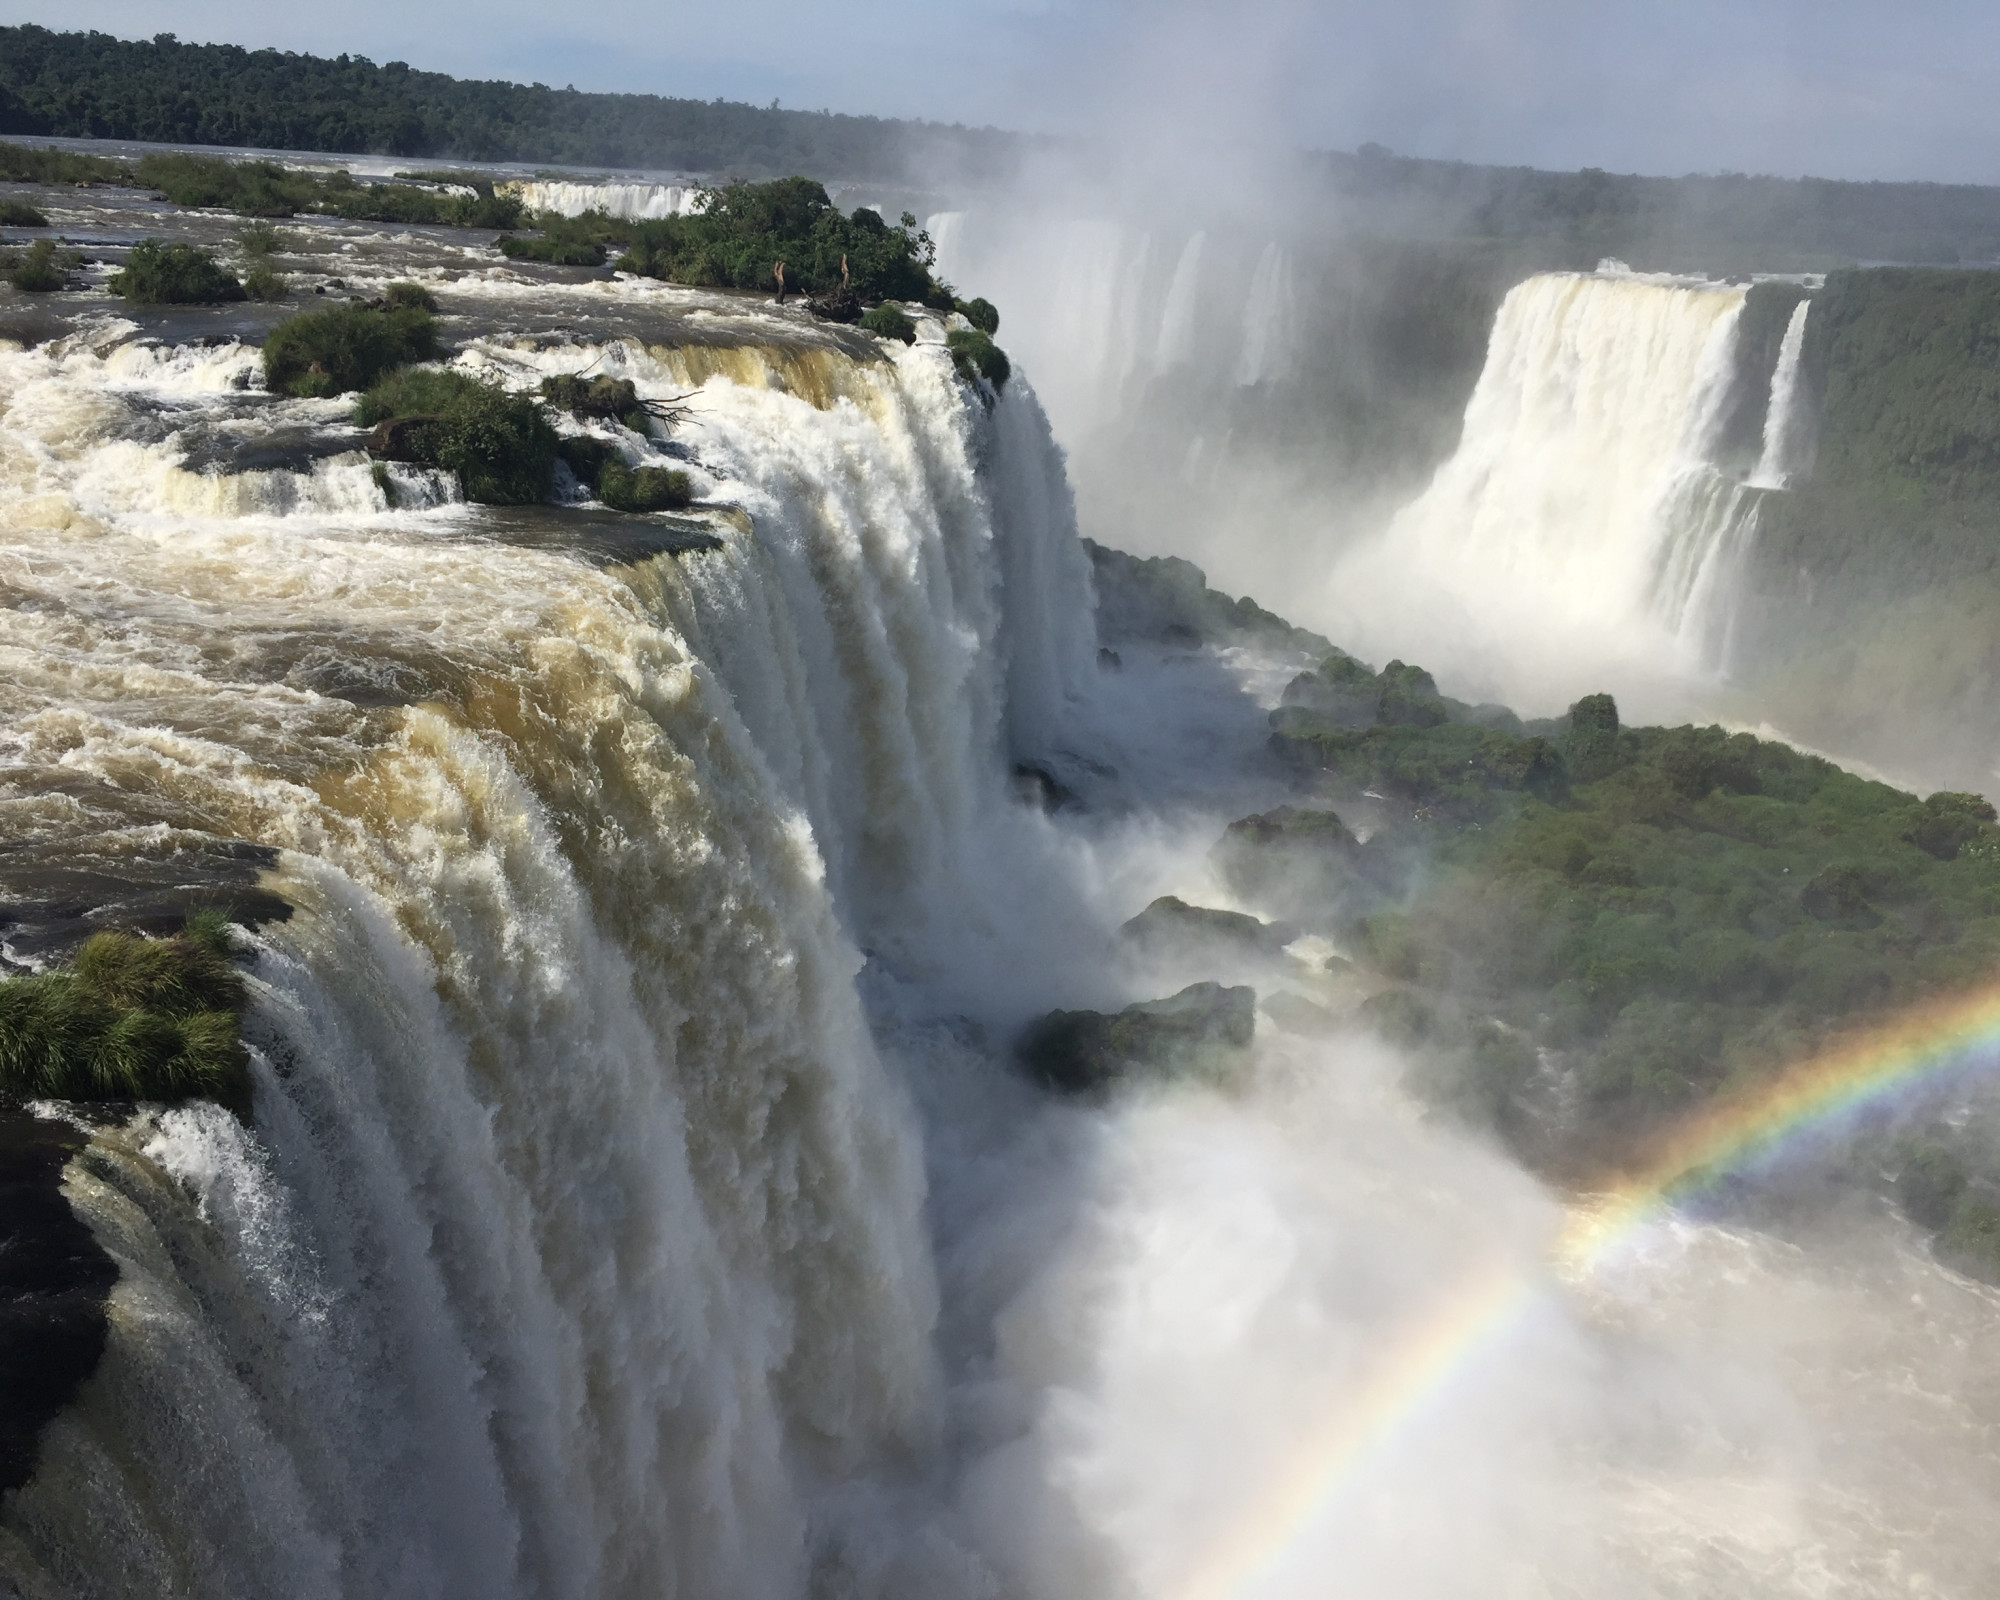 Photo 2: Iguazu sous arc en ciels